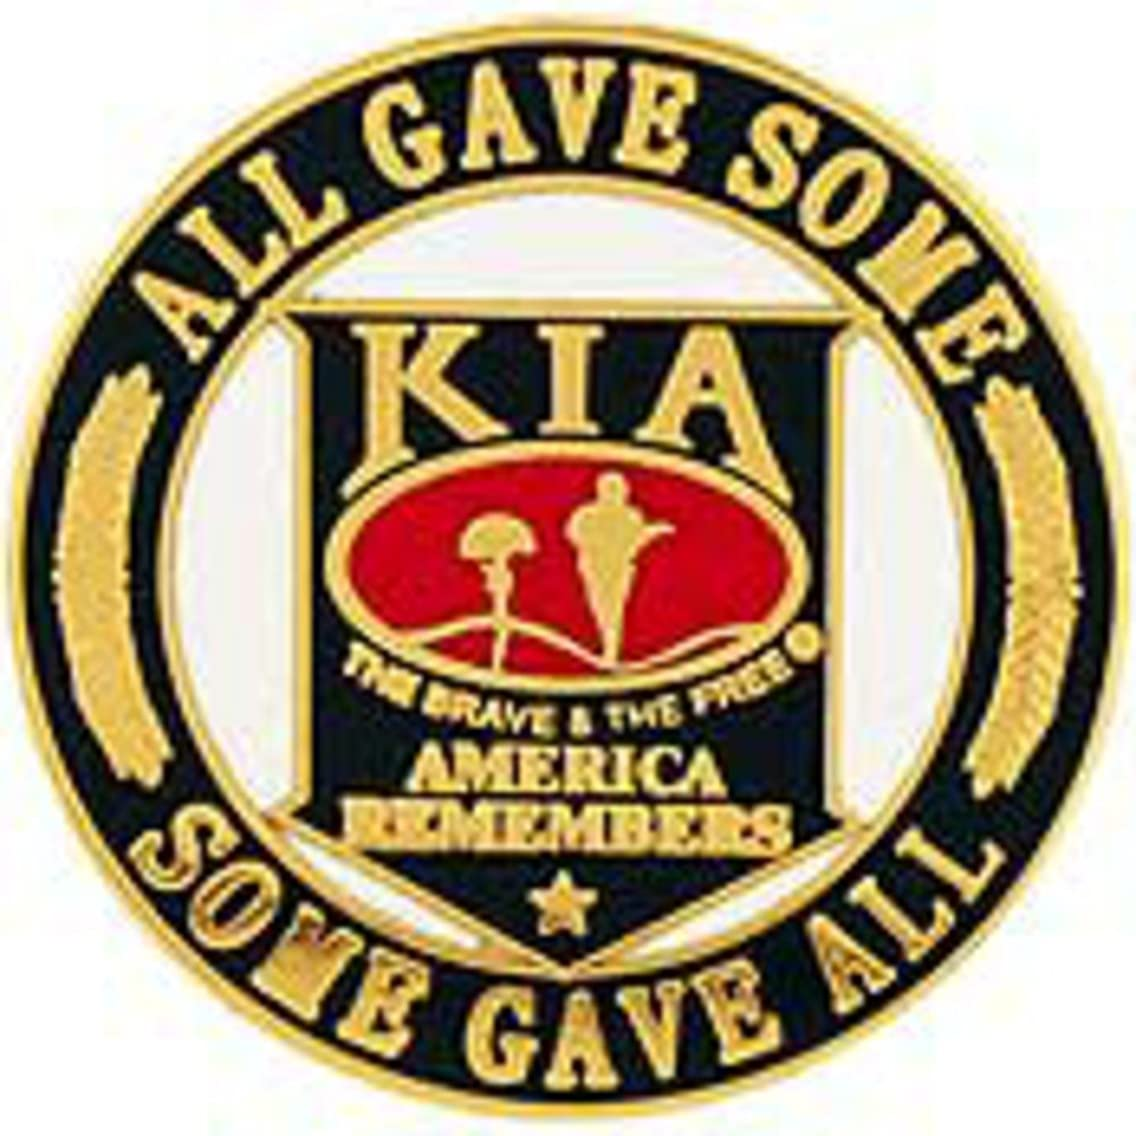 EE, Inc. KIA America Remembers Pin Military Collectibles for Men Women, Small